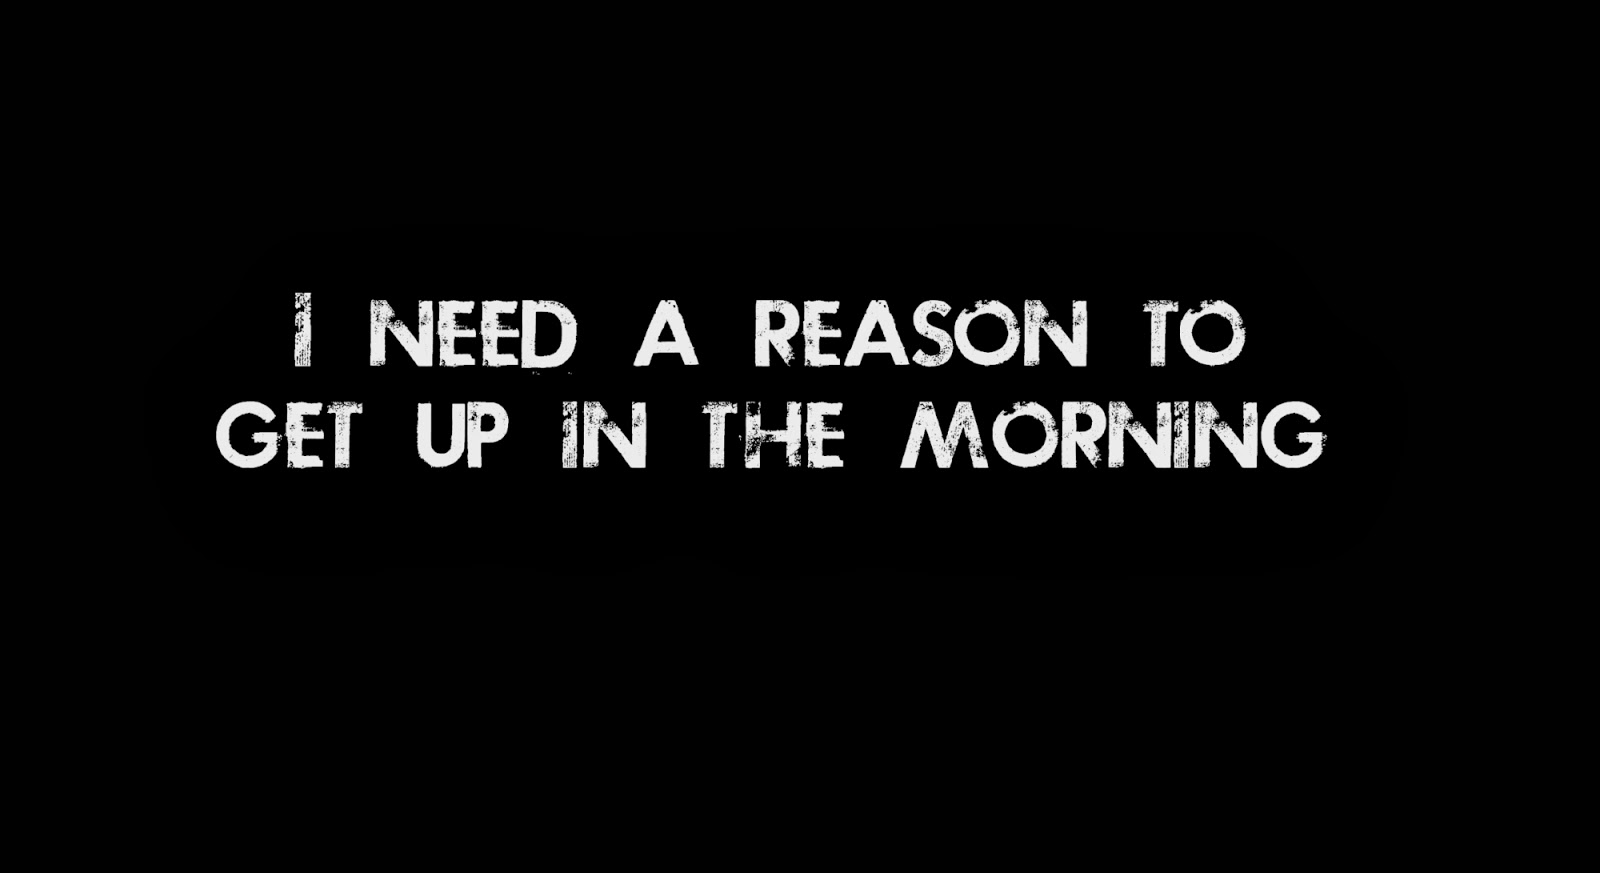 I need a roason to get up in the morning